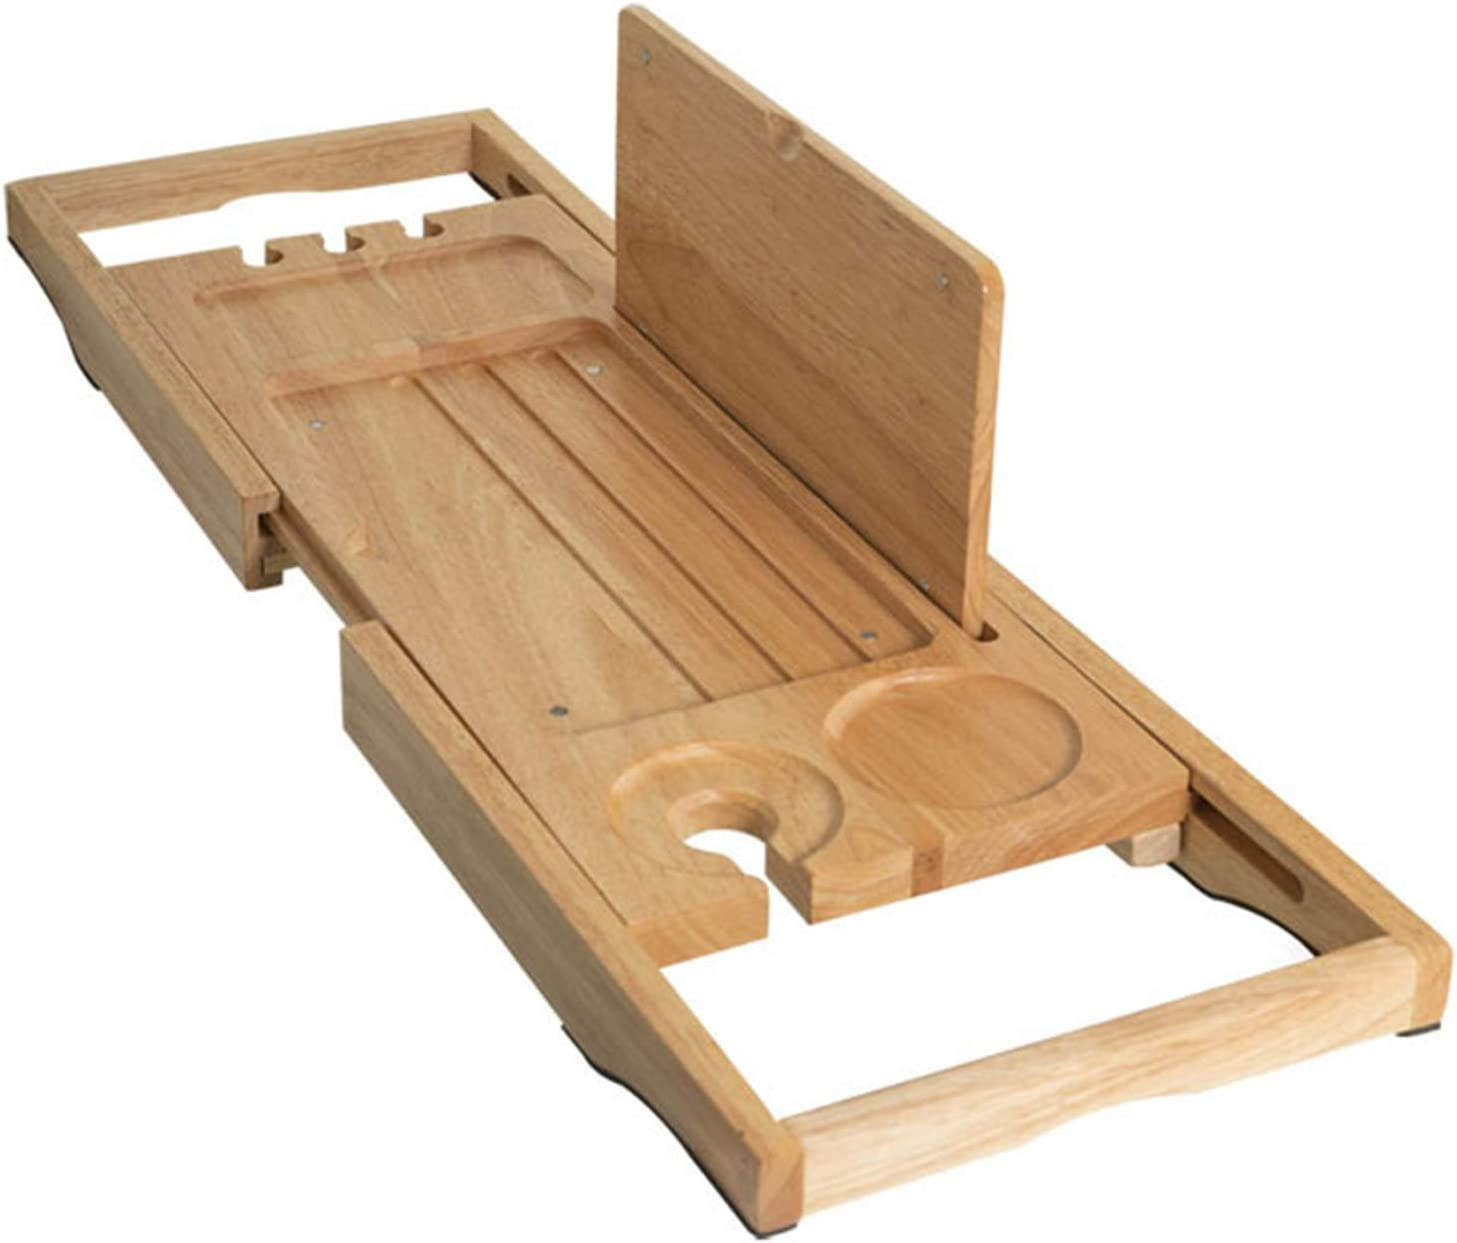 Xinrangxin Bamboo Bathtub Seasonal Wrap Introduction Caddy Mail order cheap Tray Not for Glass Extendable